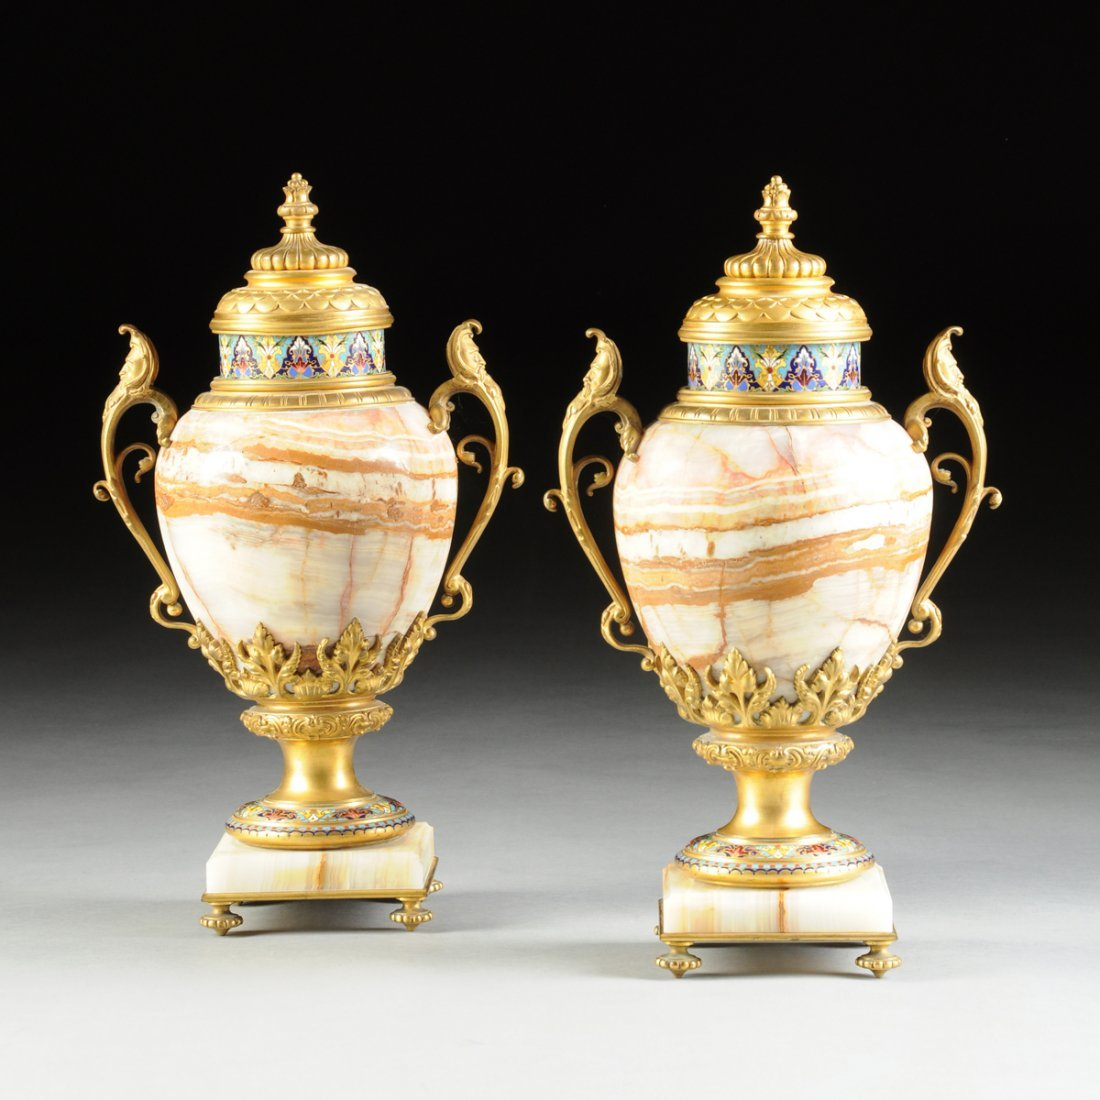 A PAIR OF FINE FRENCH CHAMPLEVÉ ENAMELED ORMOLU MOUNTED